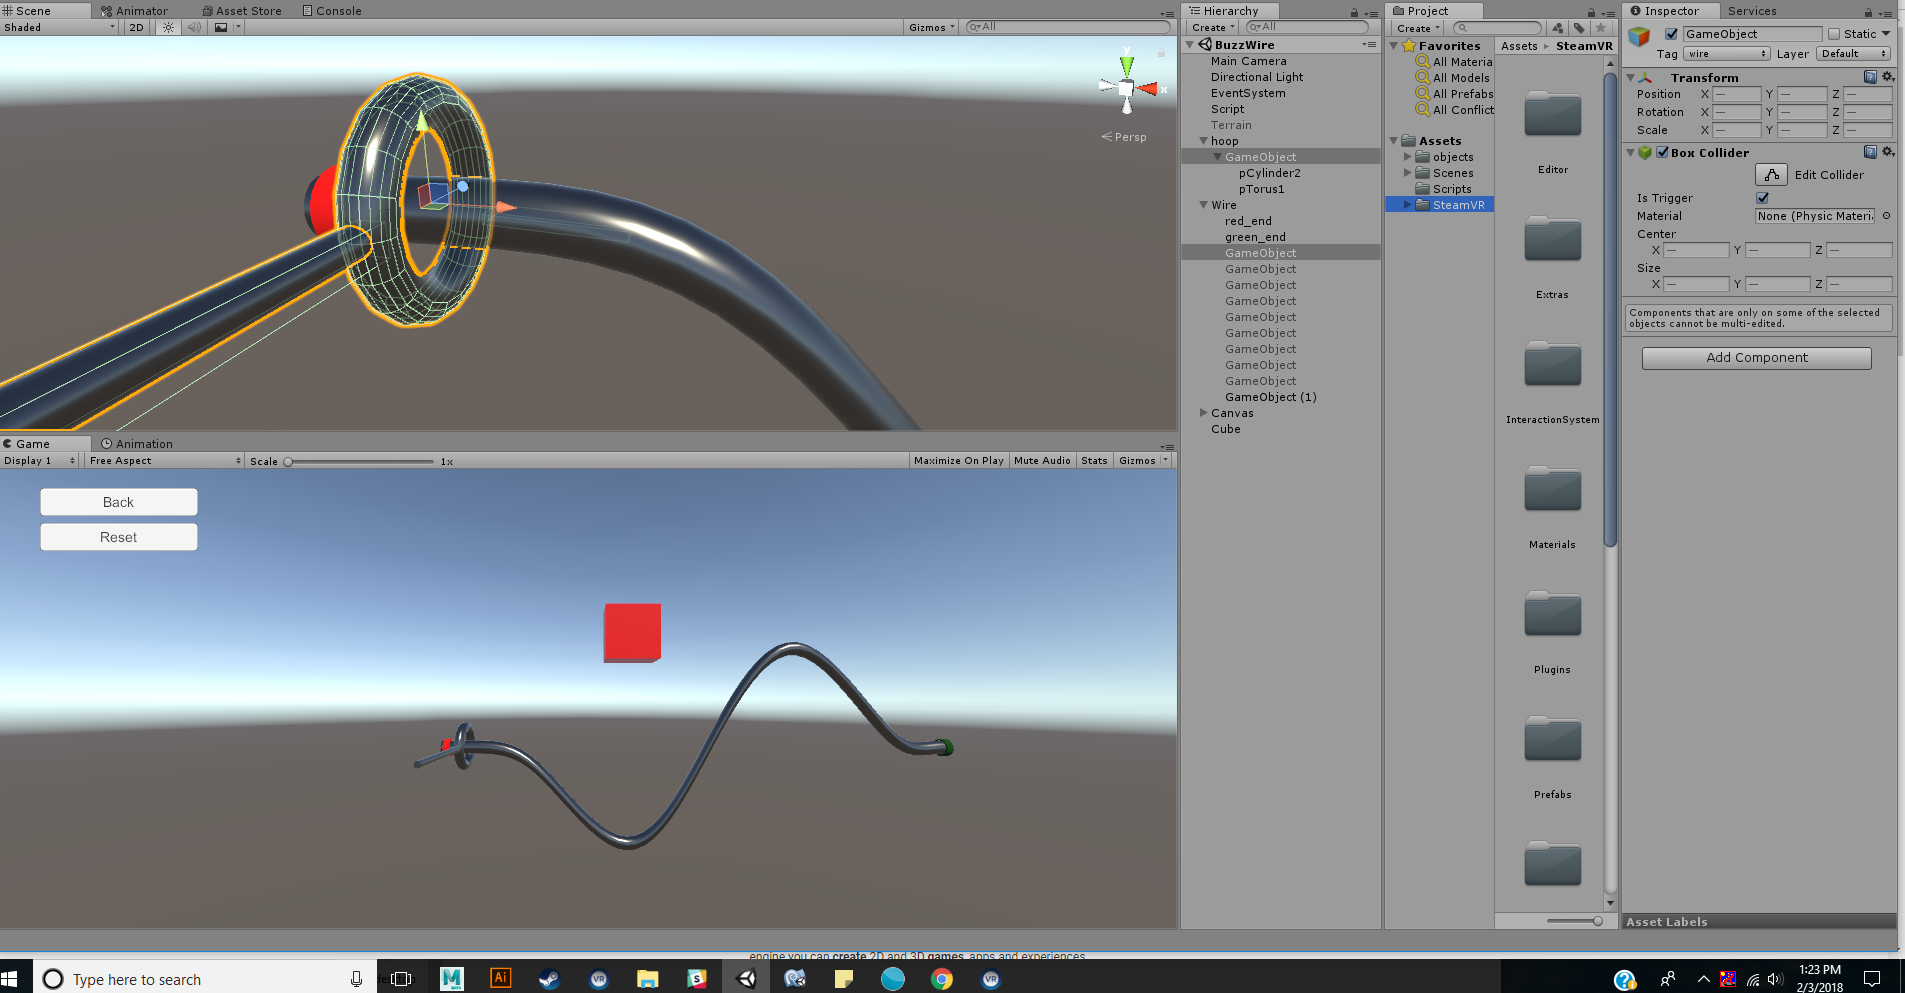 how to create colliders for wire (buzz wire game) - Unity Forum